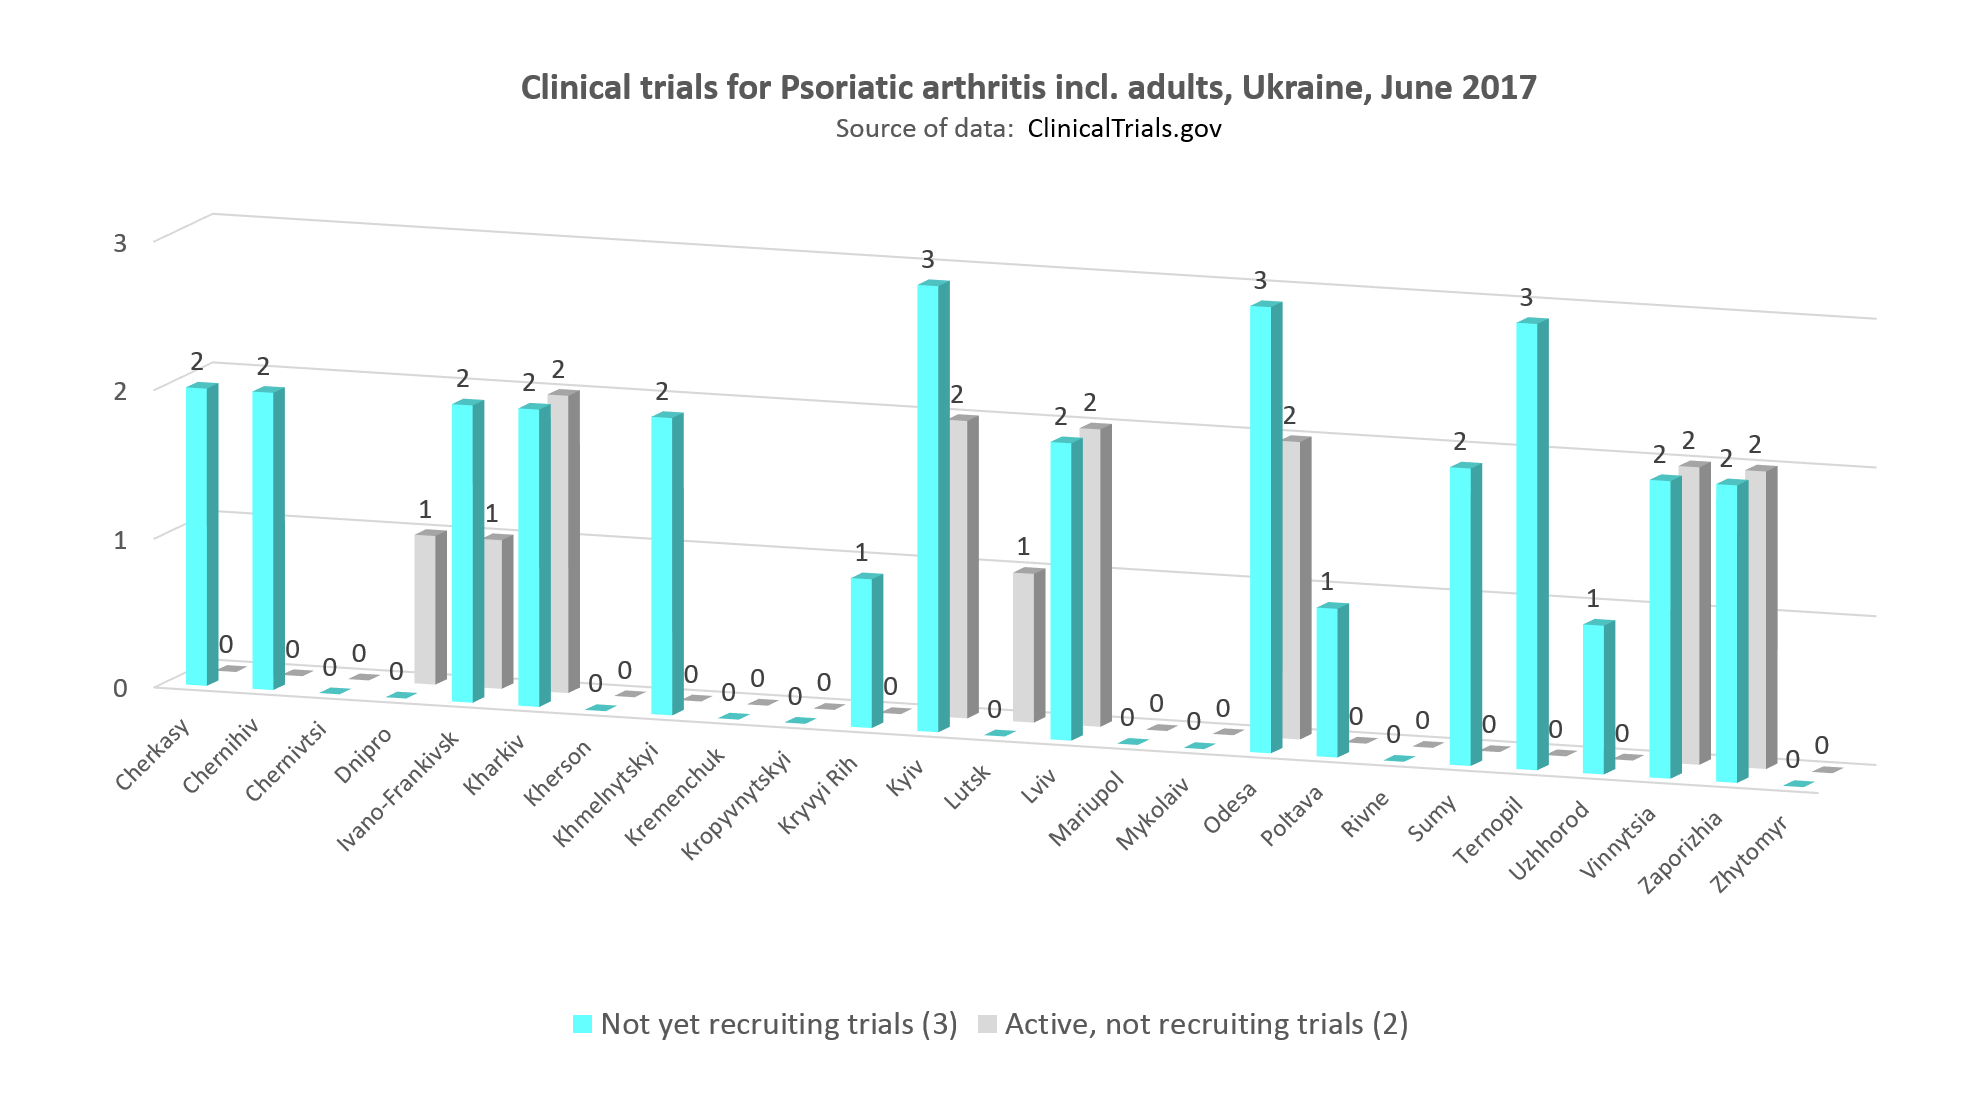 clinical trials for psoriatic arthritis including adults in Ukraine, June 2017